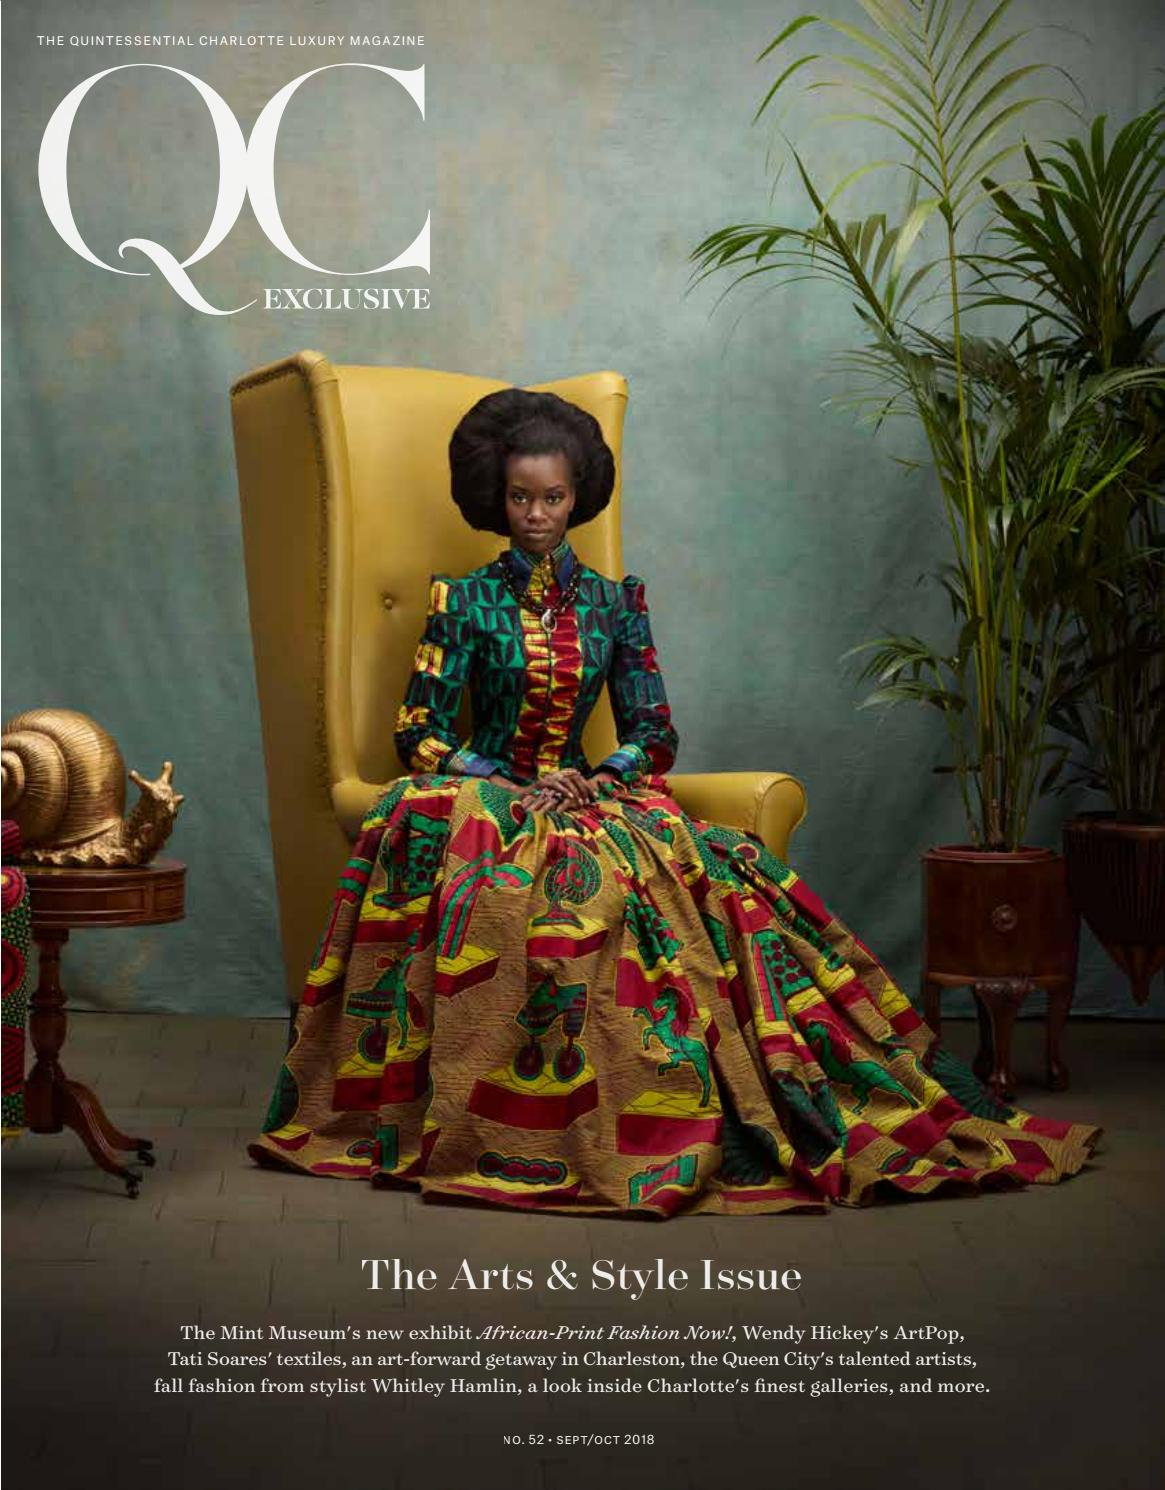 5a6fd0132a7 QC Exclusive No. 52 - 2018 - Issue 7 - The Arts and Culture Issue by QC  Exclusive Magazine - issuu